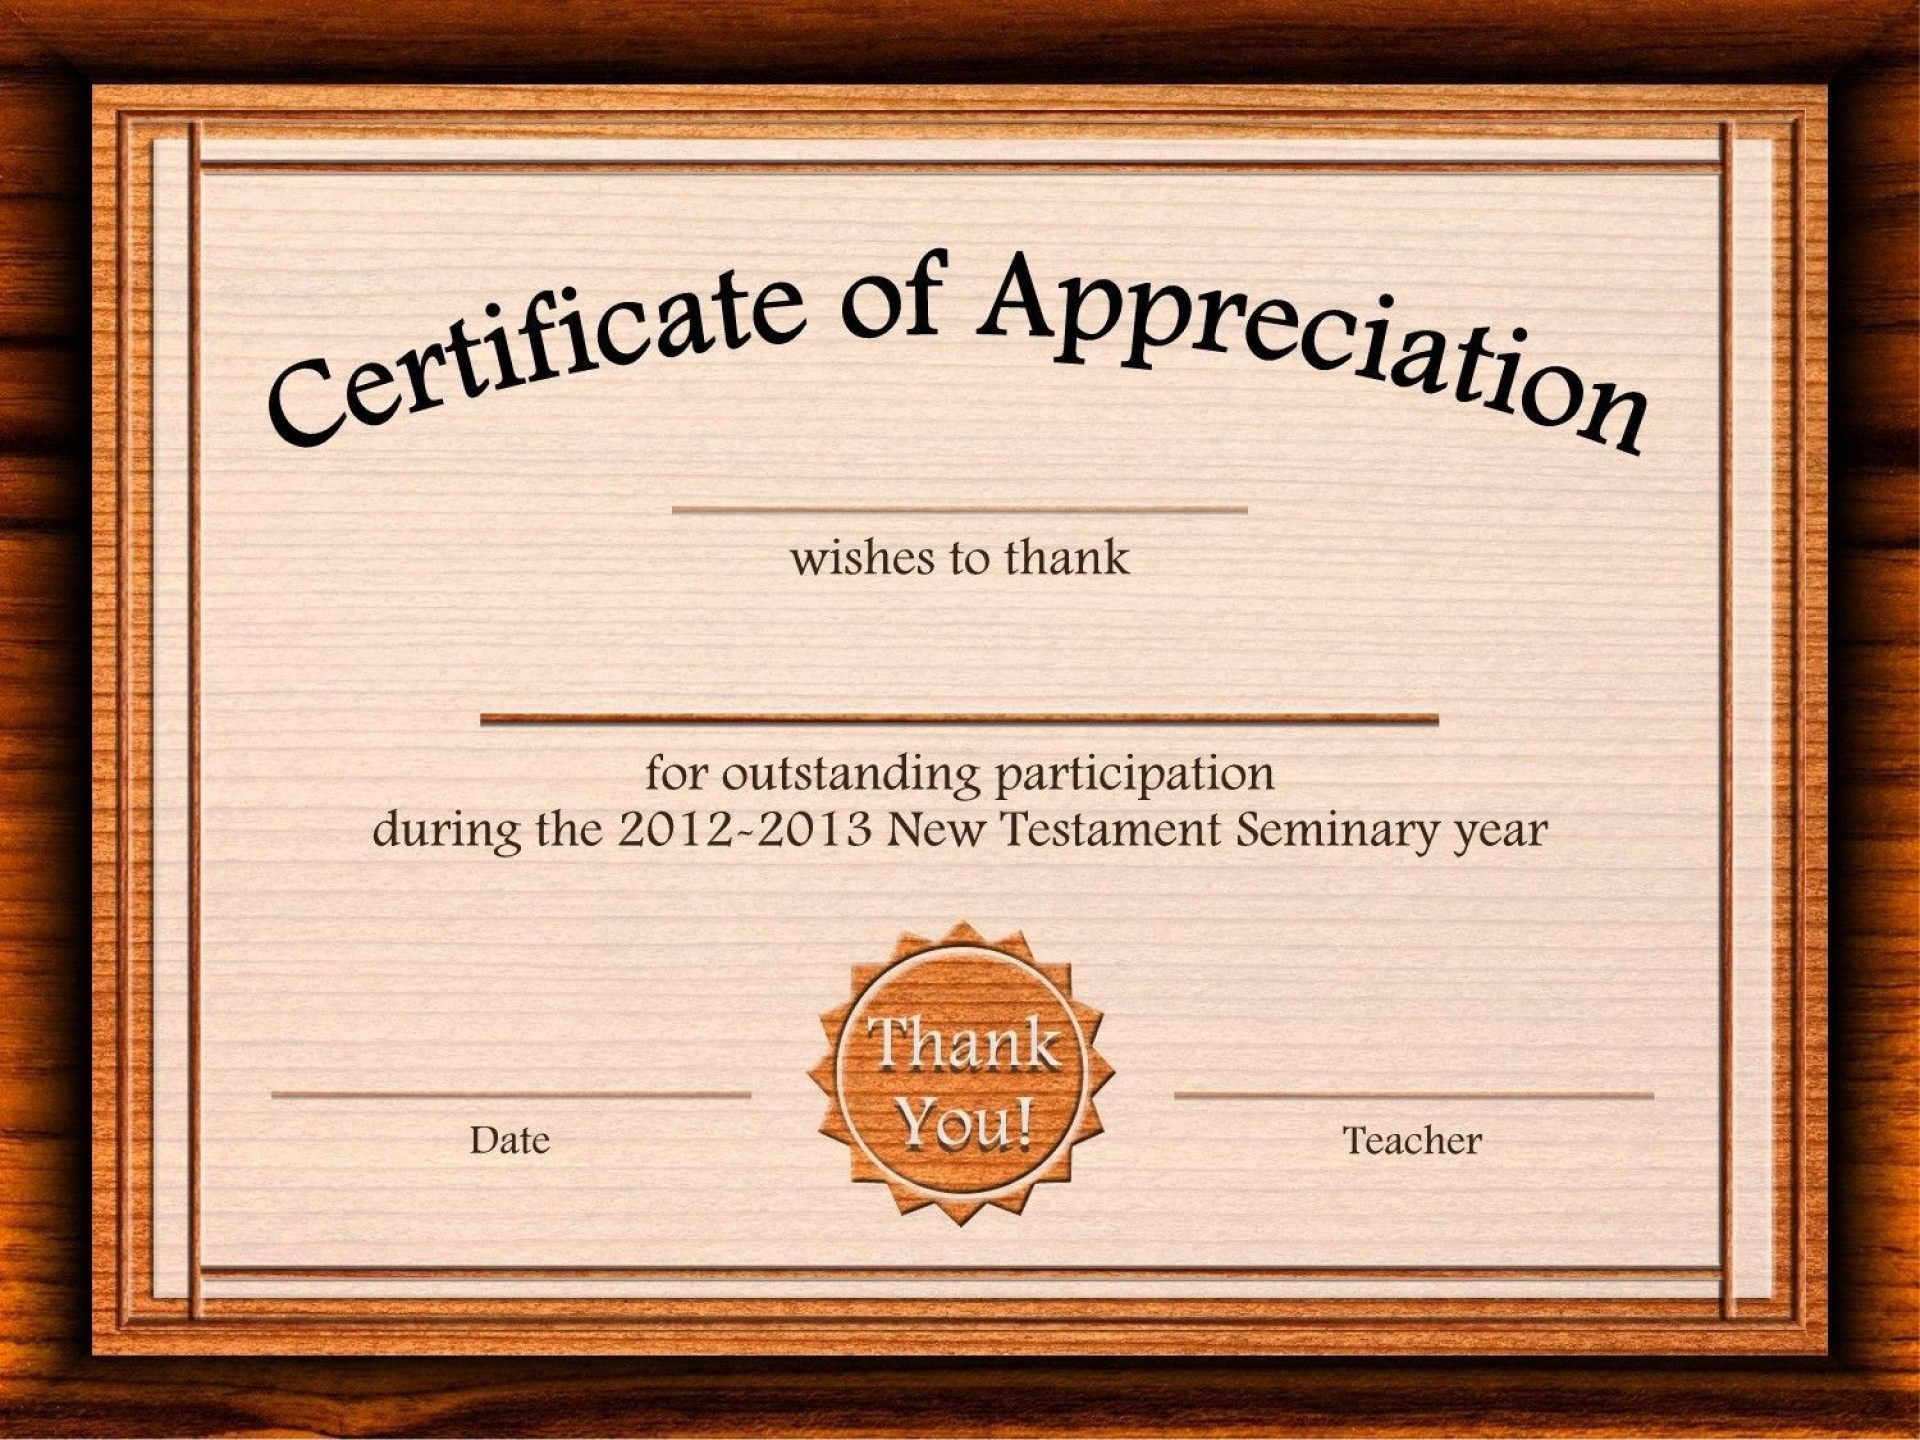 002 Outstanding Free Certificate Template Word Download Highest Quality  Of Appreciation Doc Award Border1920